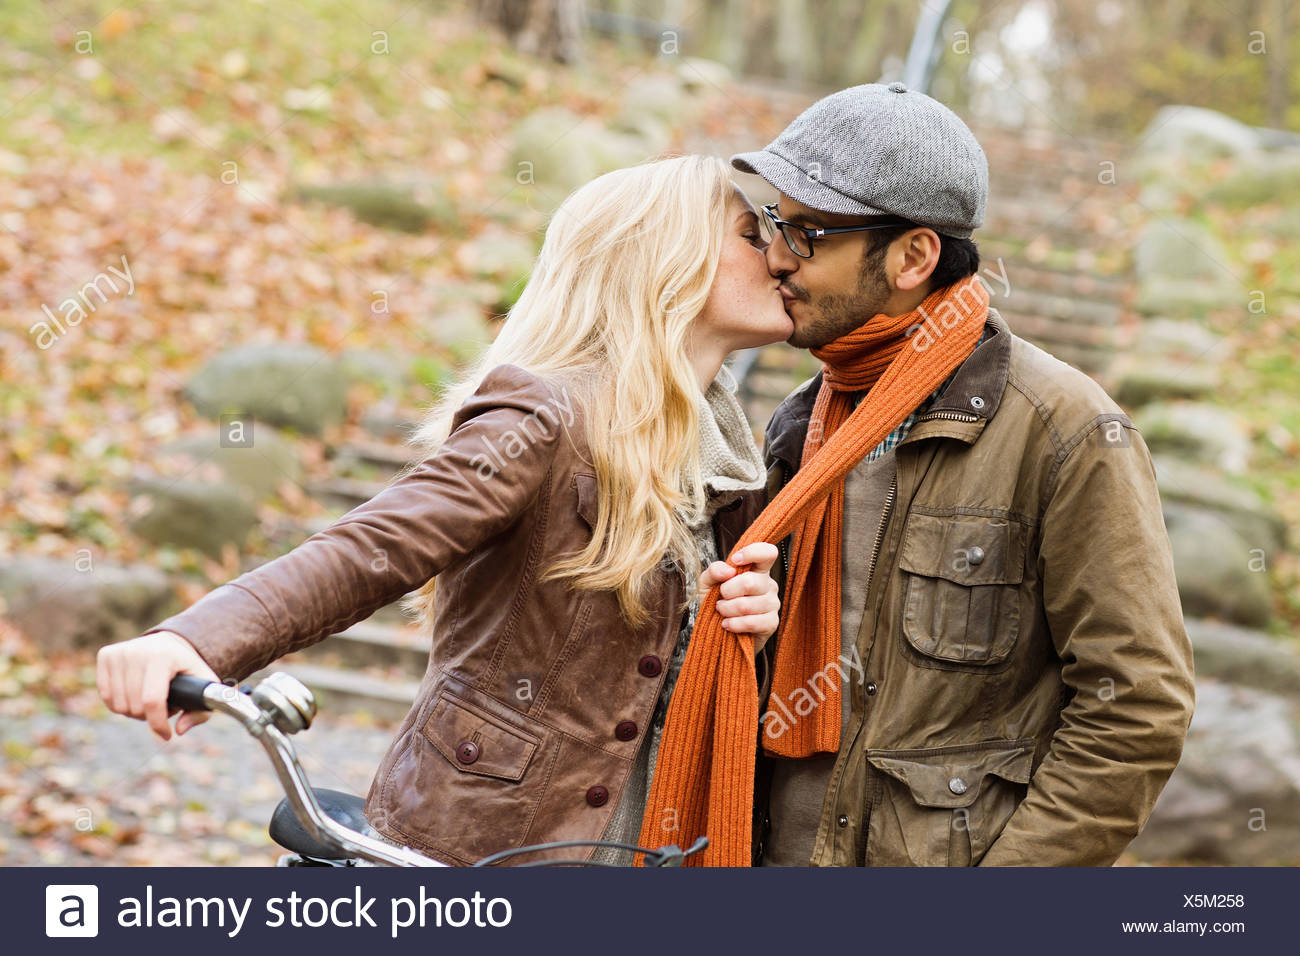 Couple kissing in park - Stock Image